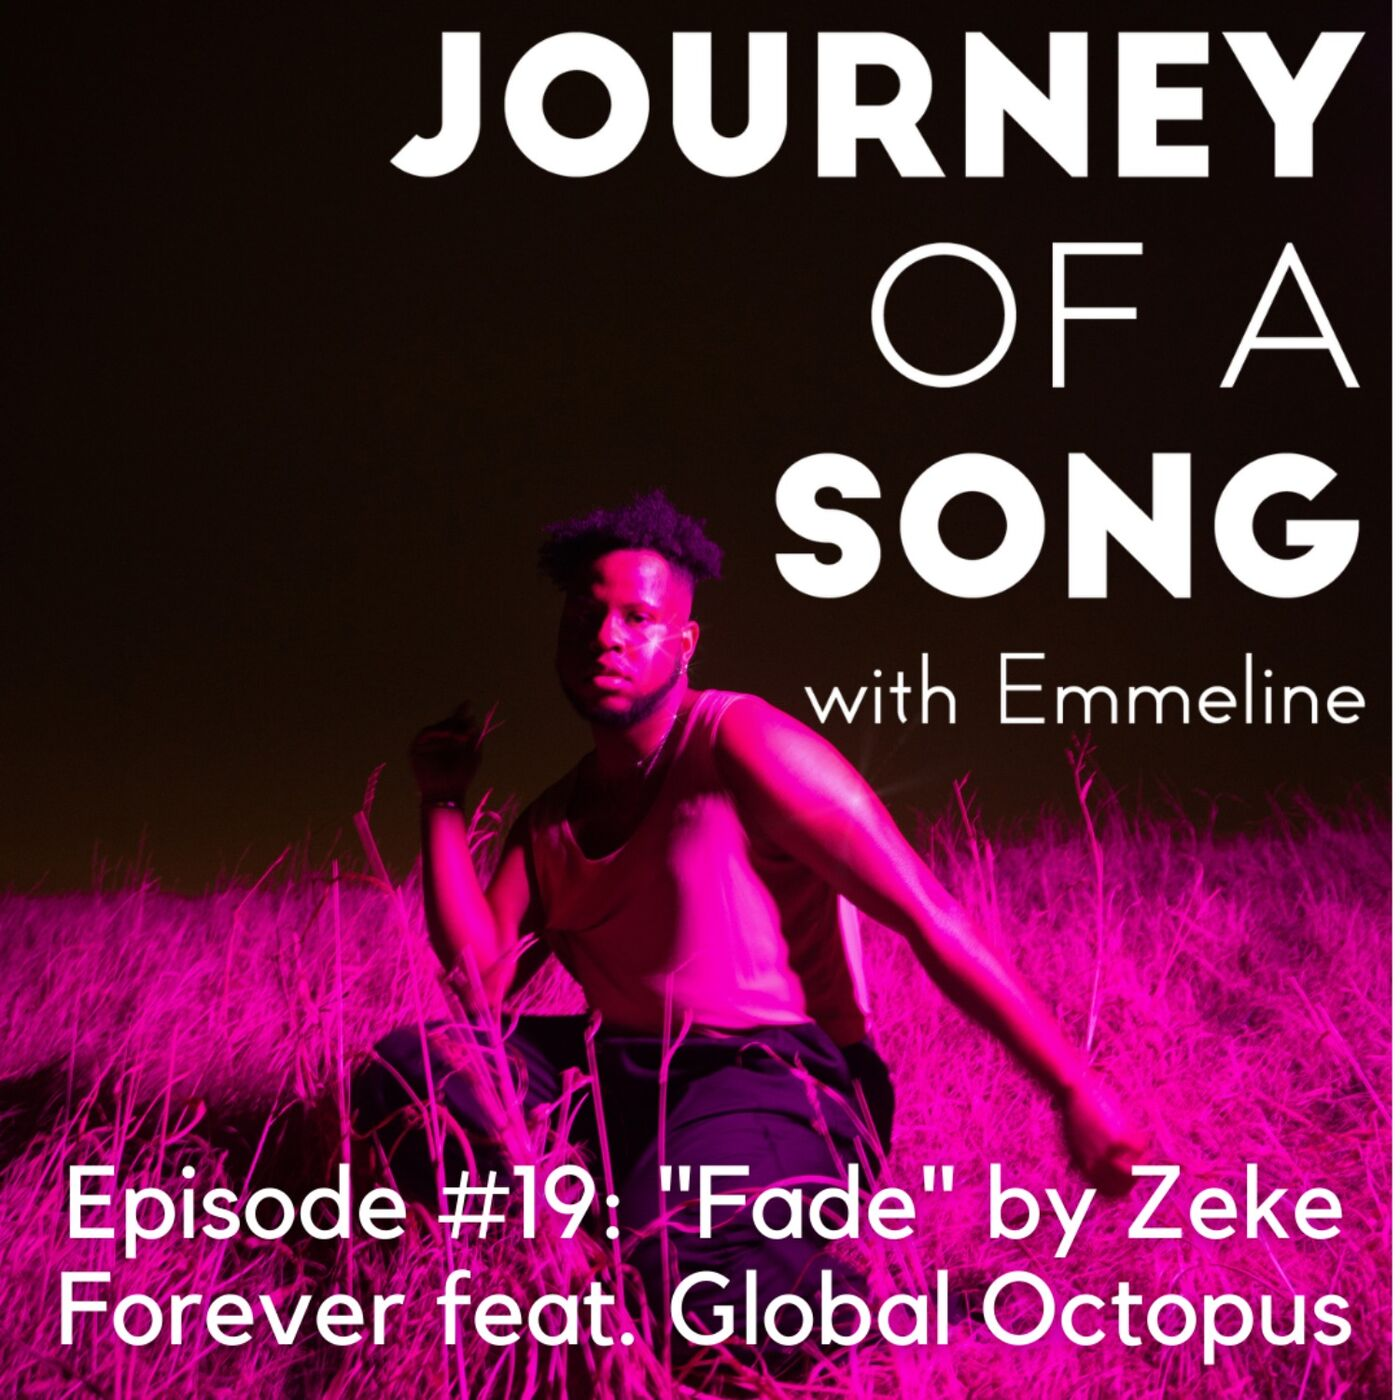 """Episode 19: """"fade."""" by Zeke Forever feat. Global Octopus"""